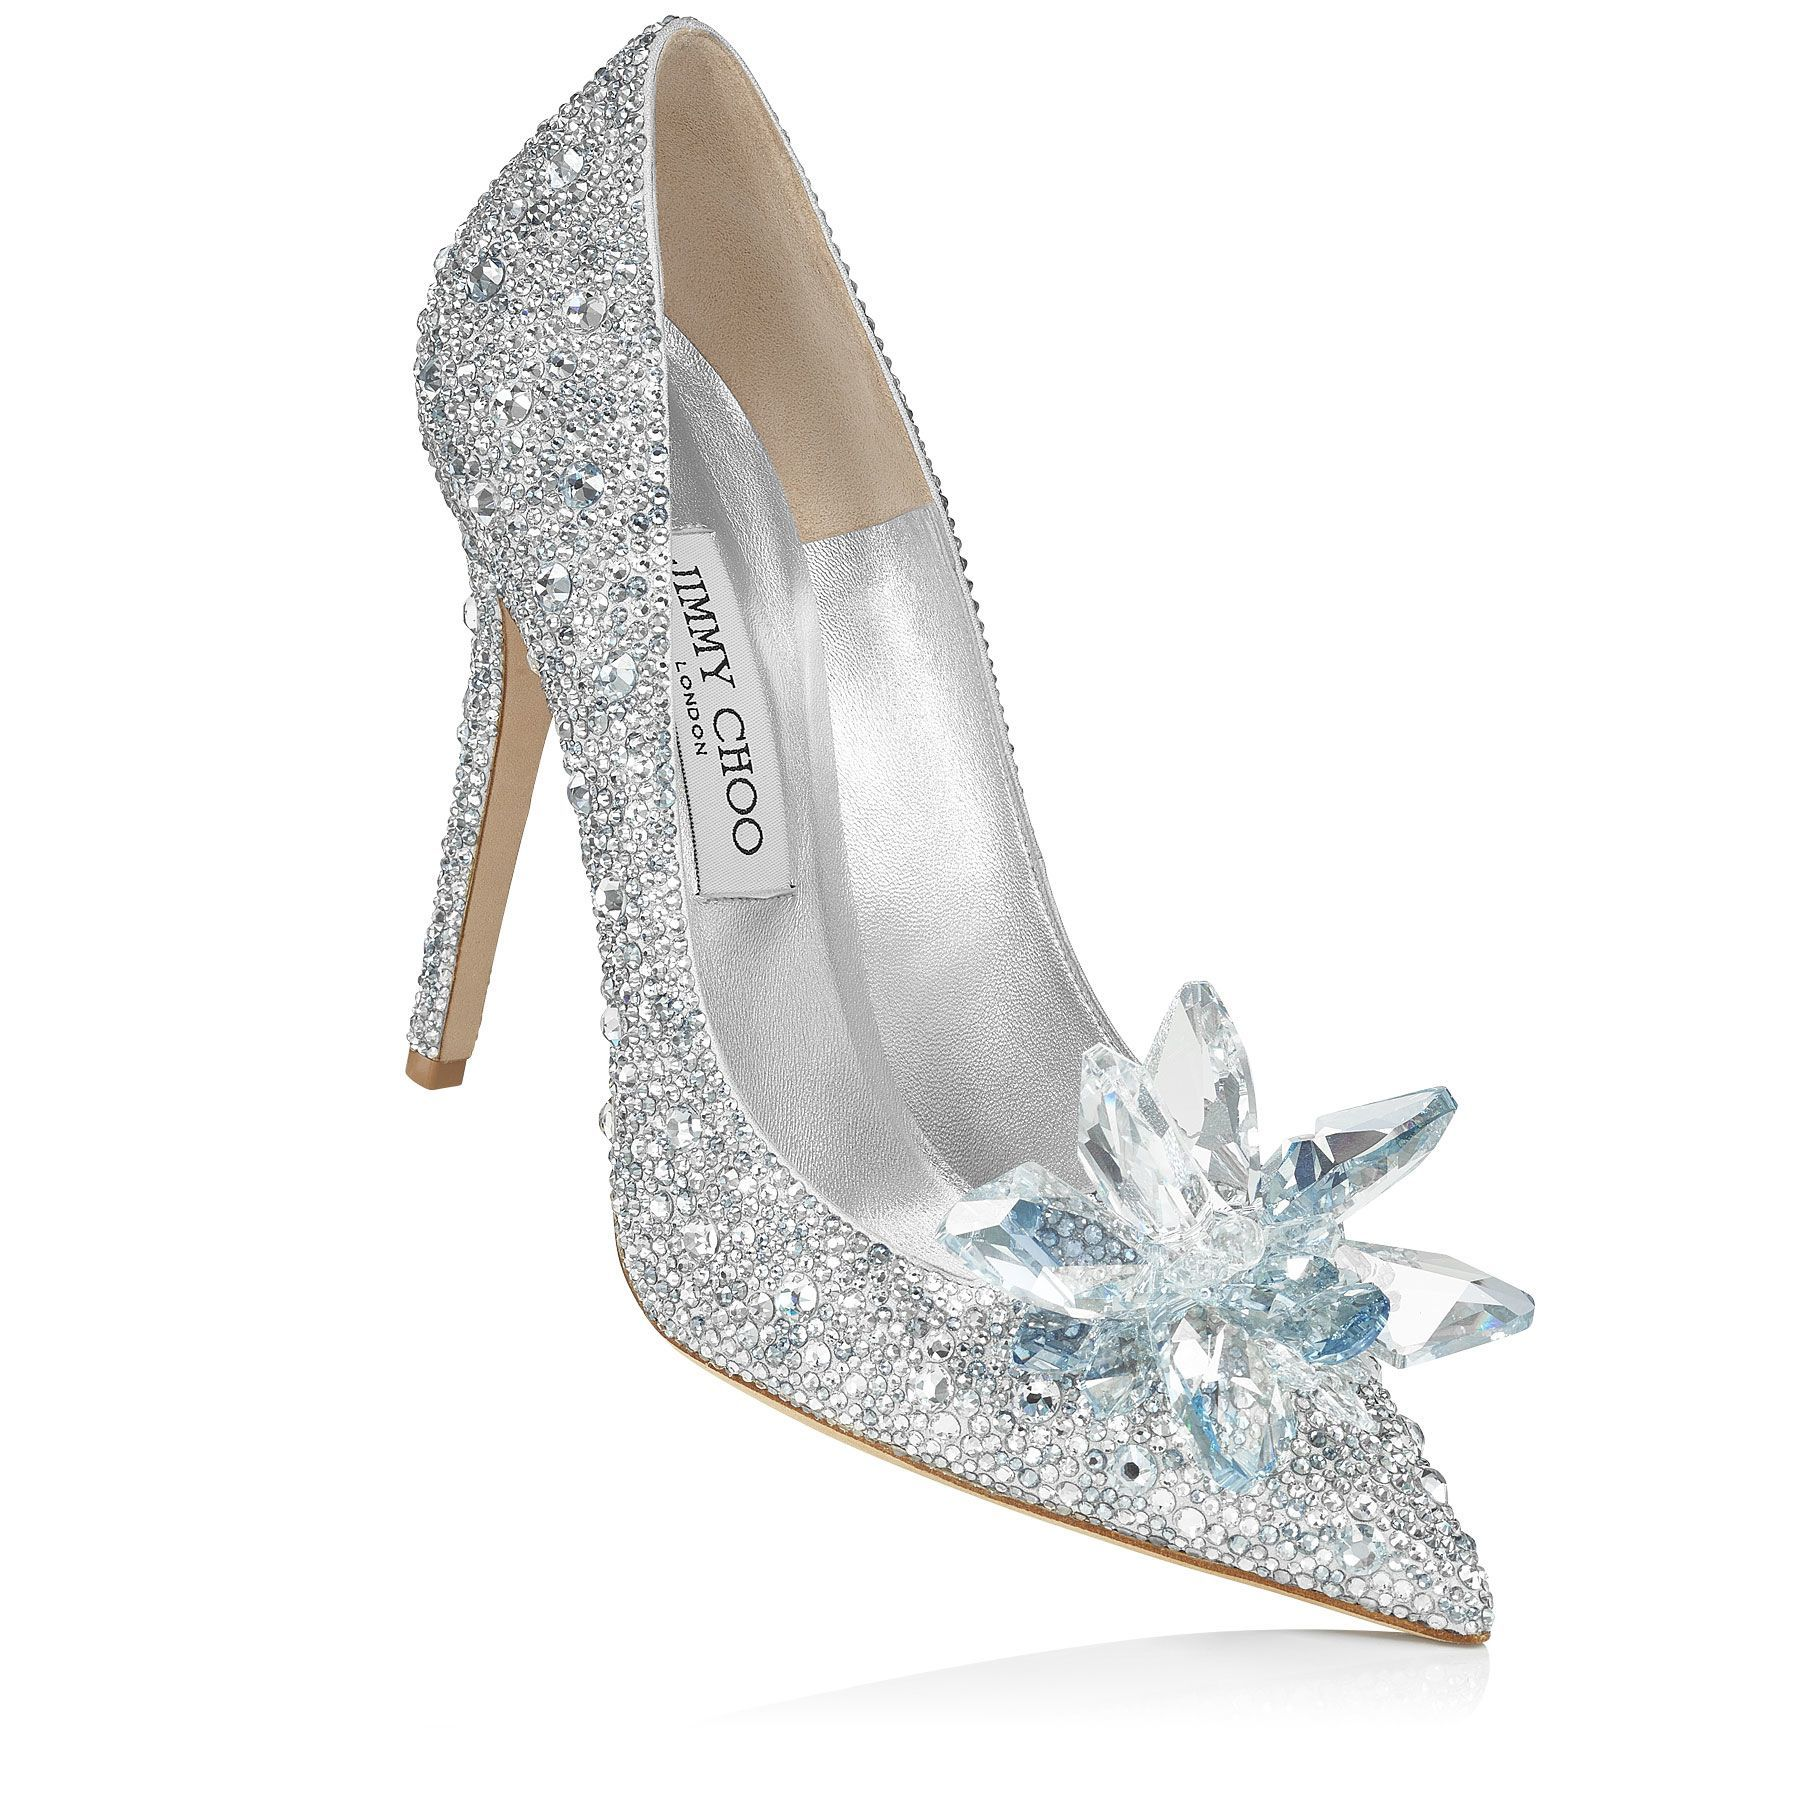 Crystal Covered Pointy Toe Pump 'Cinderella Slipper' | Cinderella | Exclusive | JIMMY CHOO The Cinderella Edit